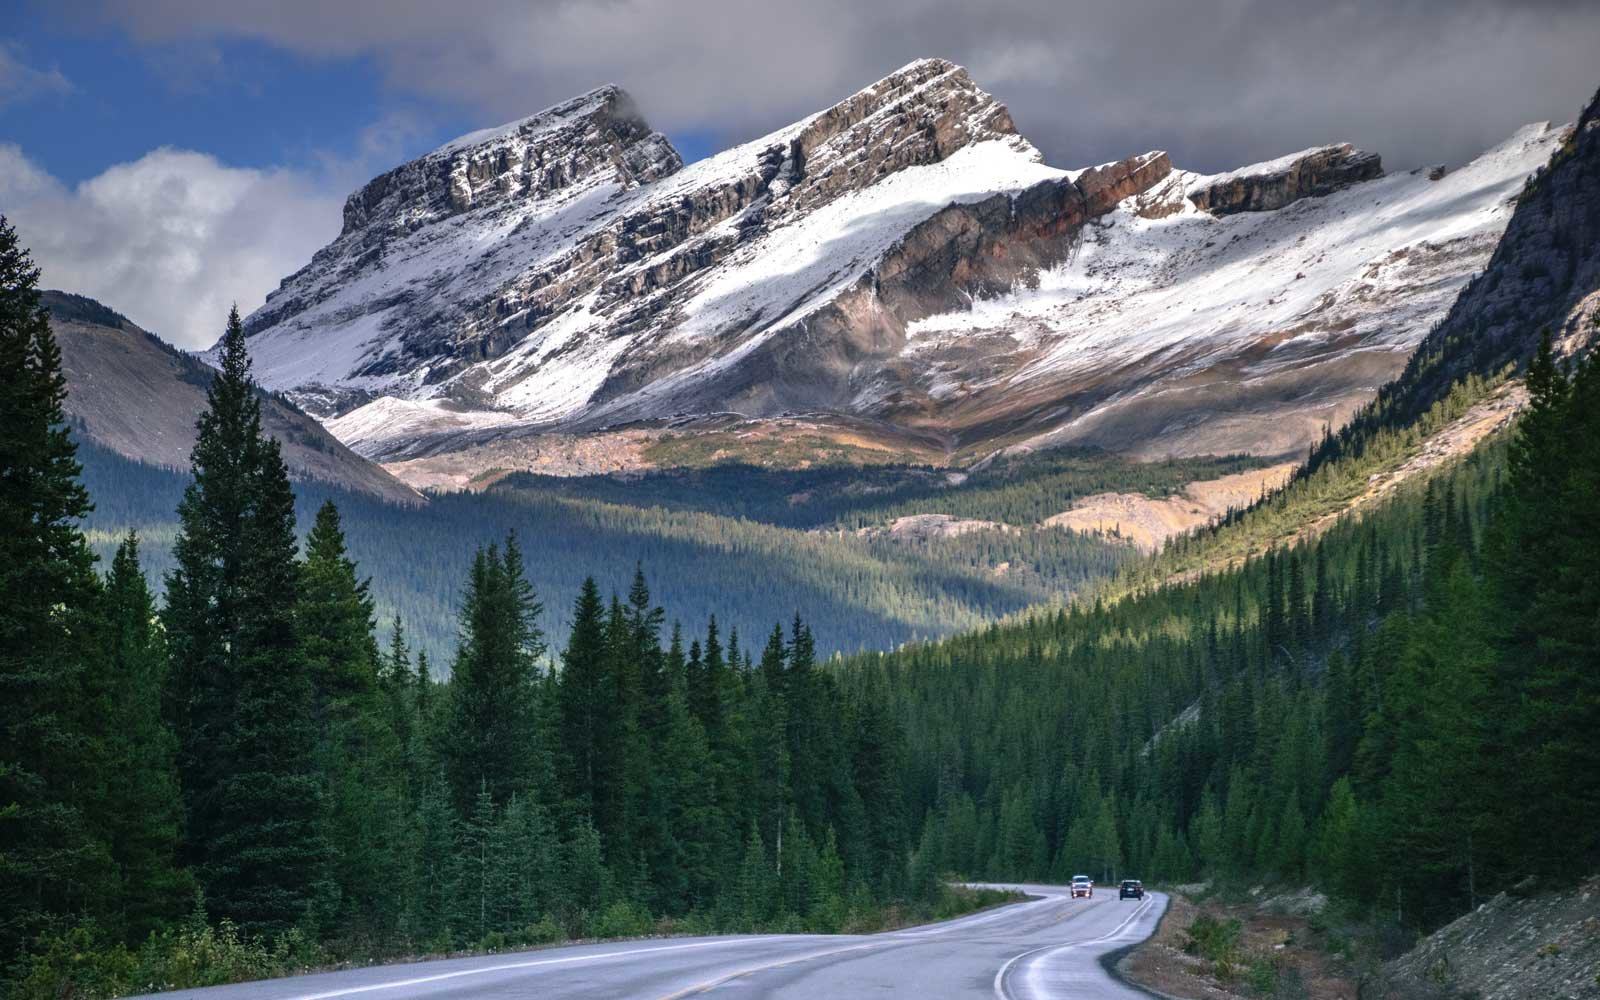 Autumn scenic drive in Canadian Rocky mountains, along the world famous Icefields Parkway (Highway 93), in Alberta province of Canada.